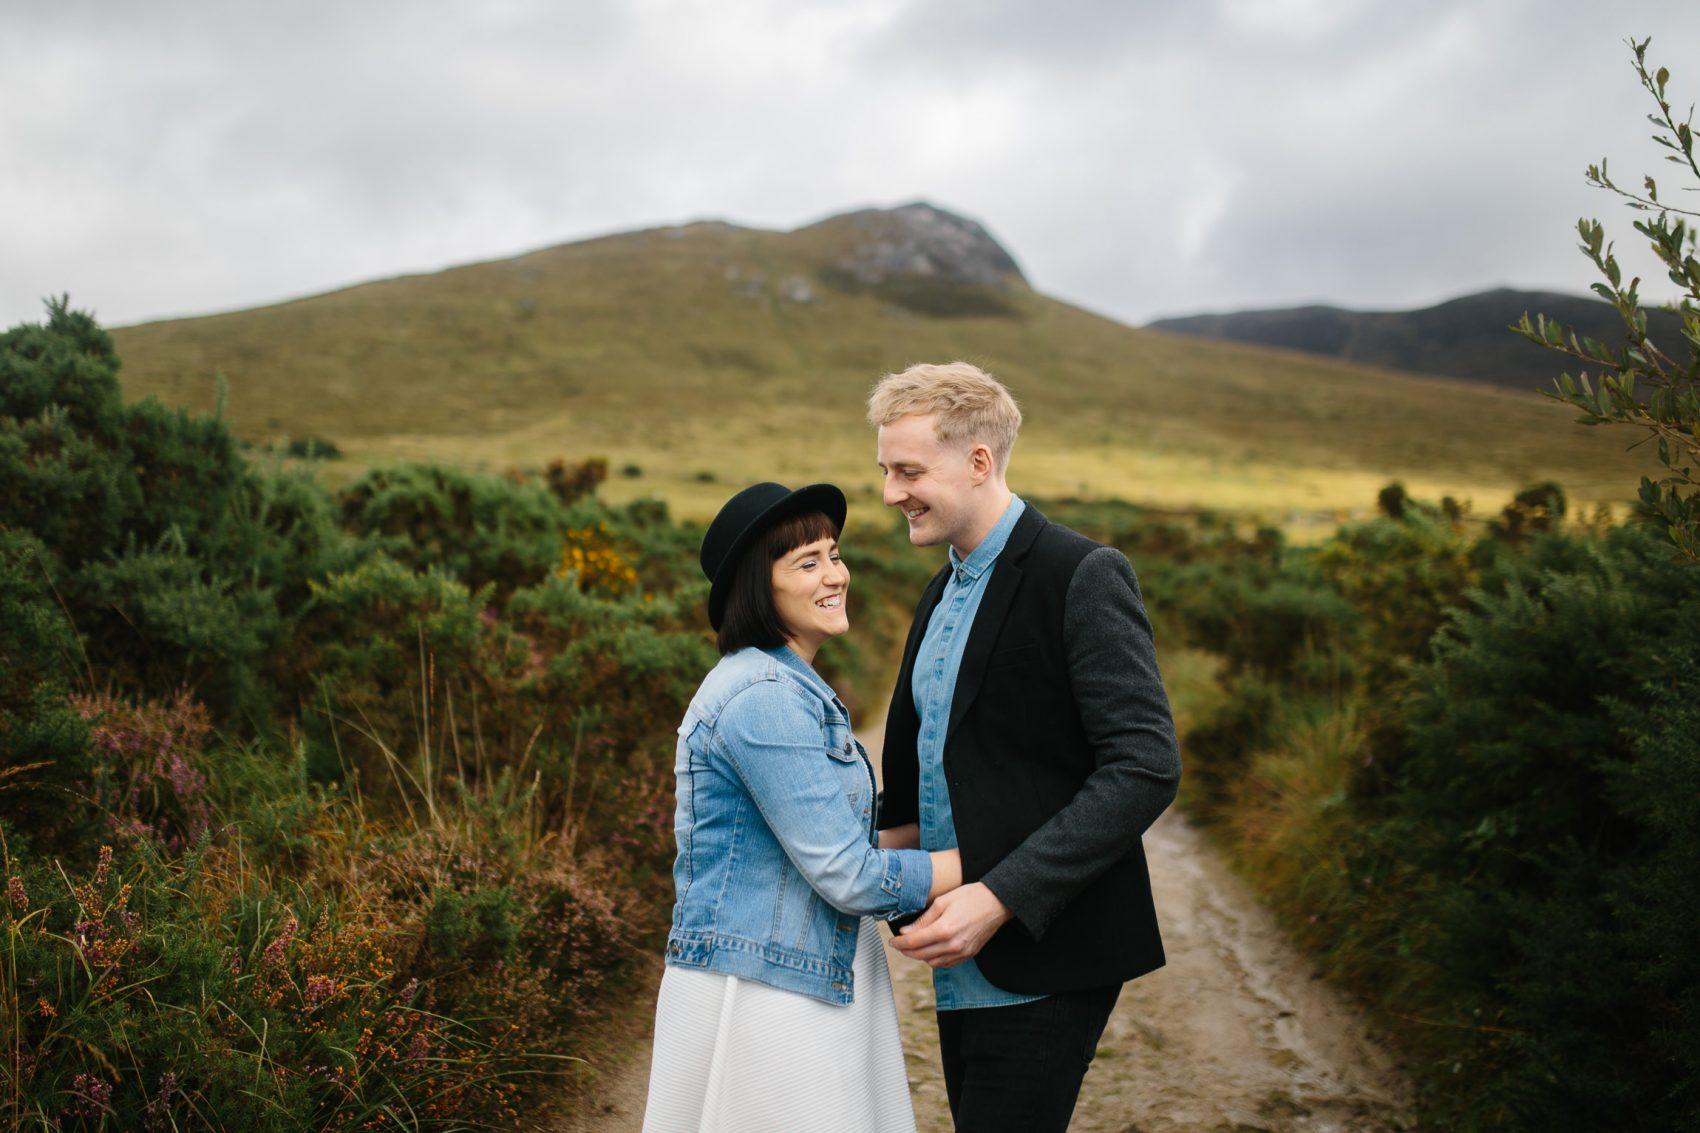 rk-web-98-1700x1133 Richard and Kate // Mourne Mountain Engagement Shoot